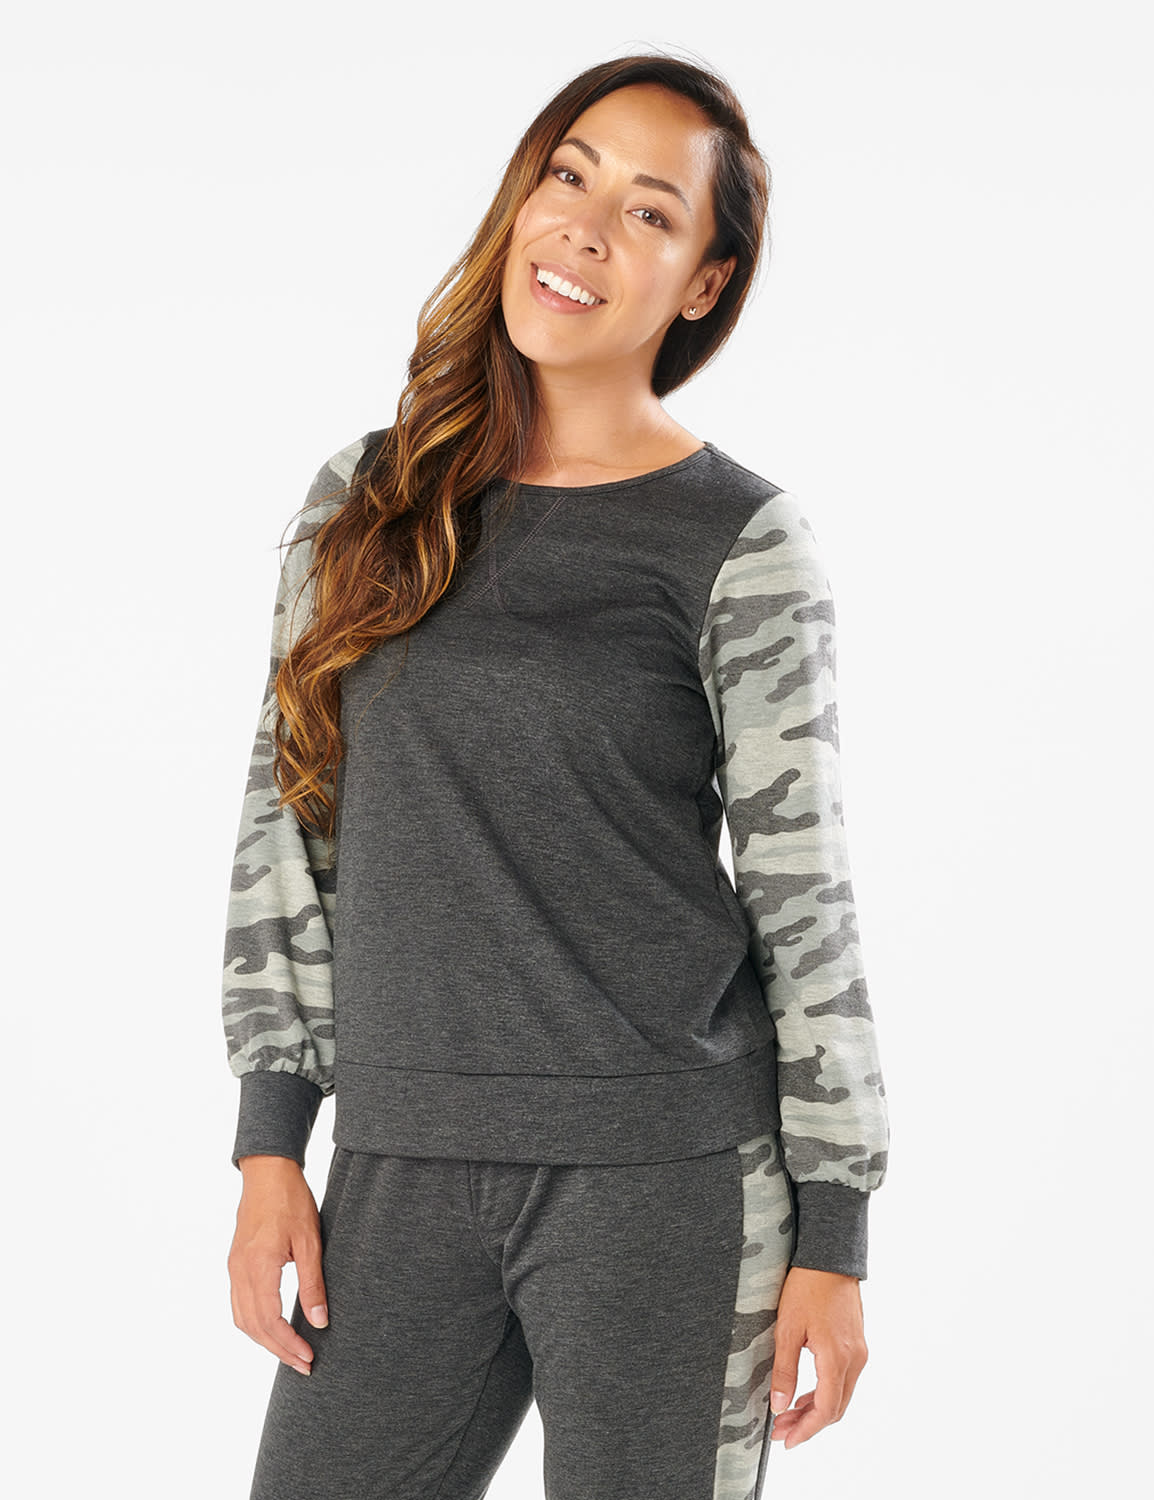 Camouflage Mixed Print Knit Top - Misses - Charcoal - Front